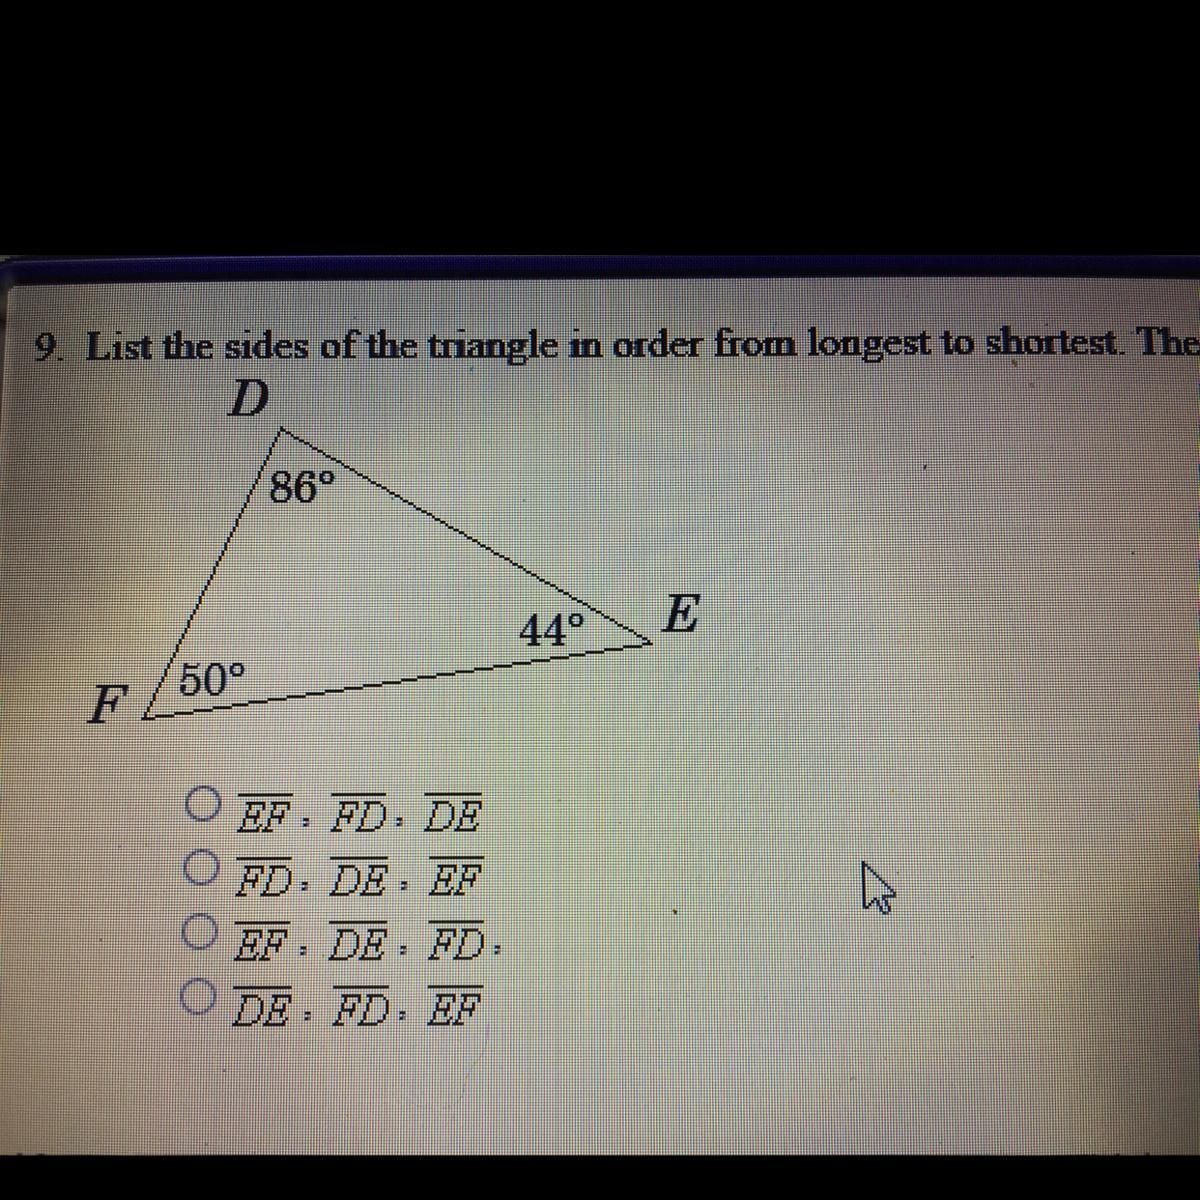 List The Sides Of The Triangle In Order From Longest To